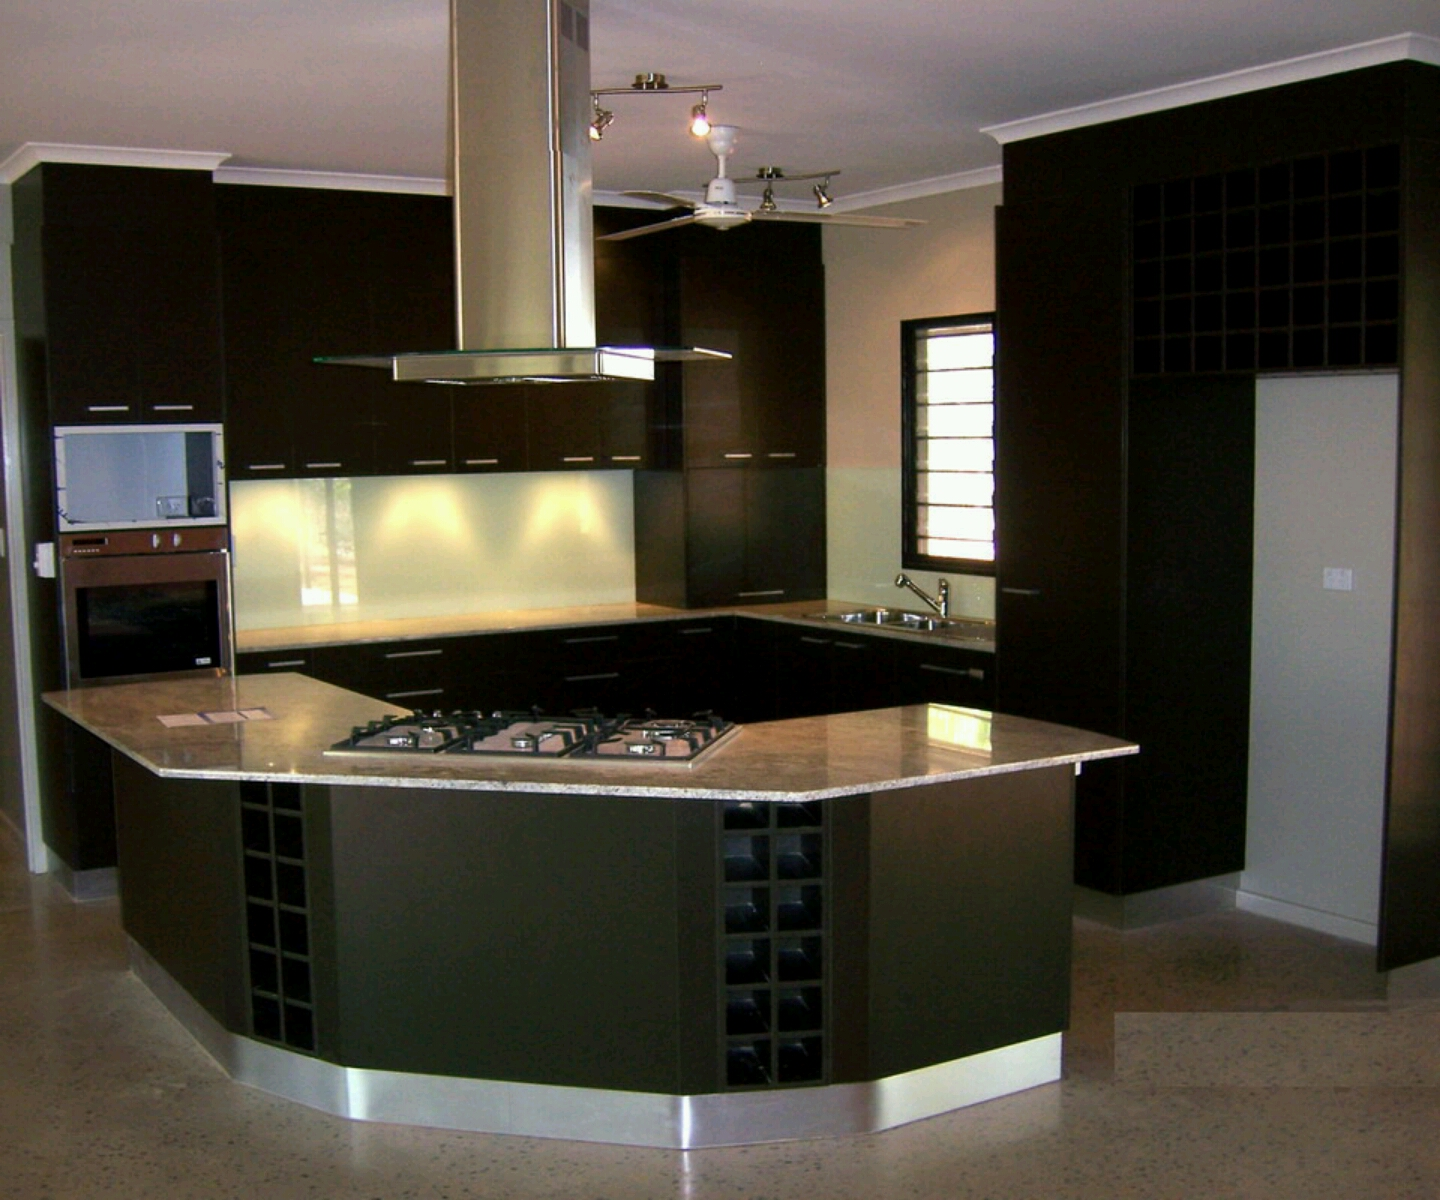 New Home Designs Latest Modern Home Kitchen Cabinet: New Home Designs Latest.: Modern Kitchen Cabinets Designs